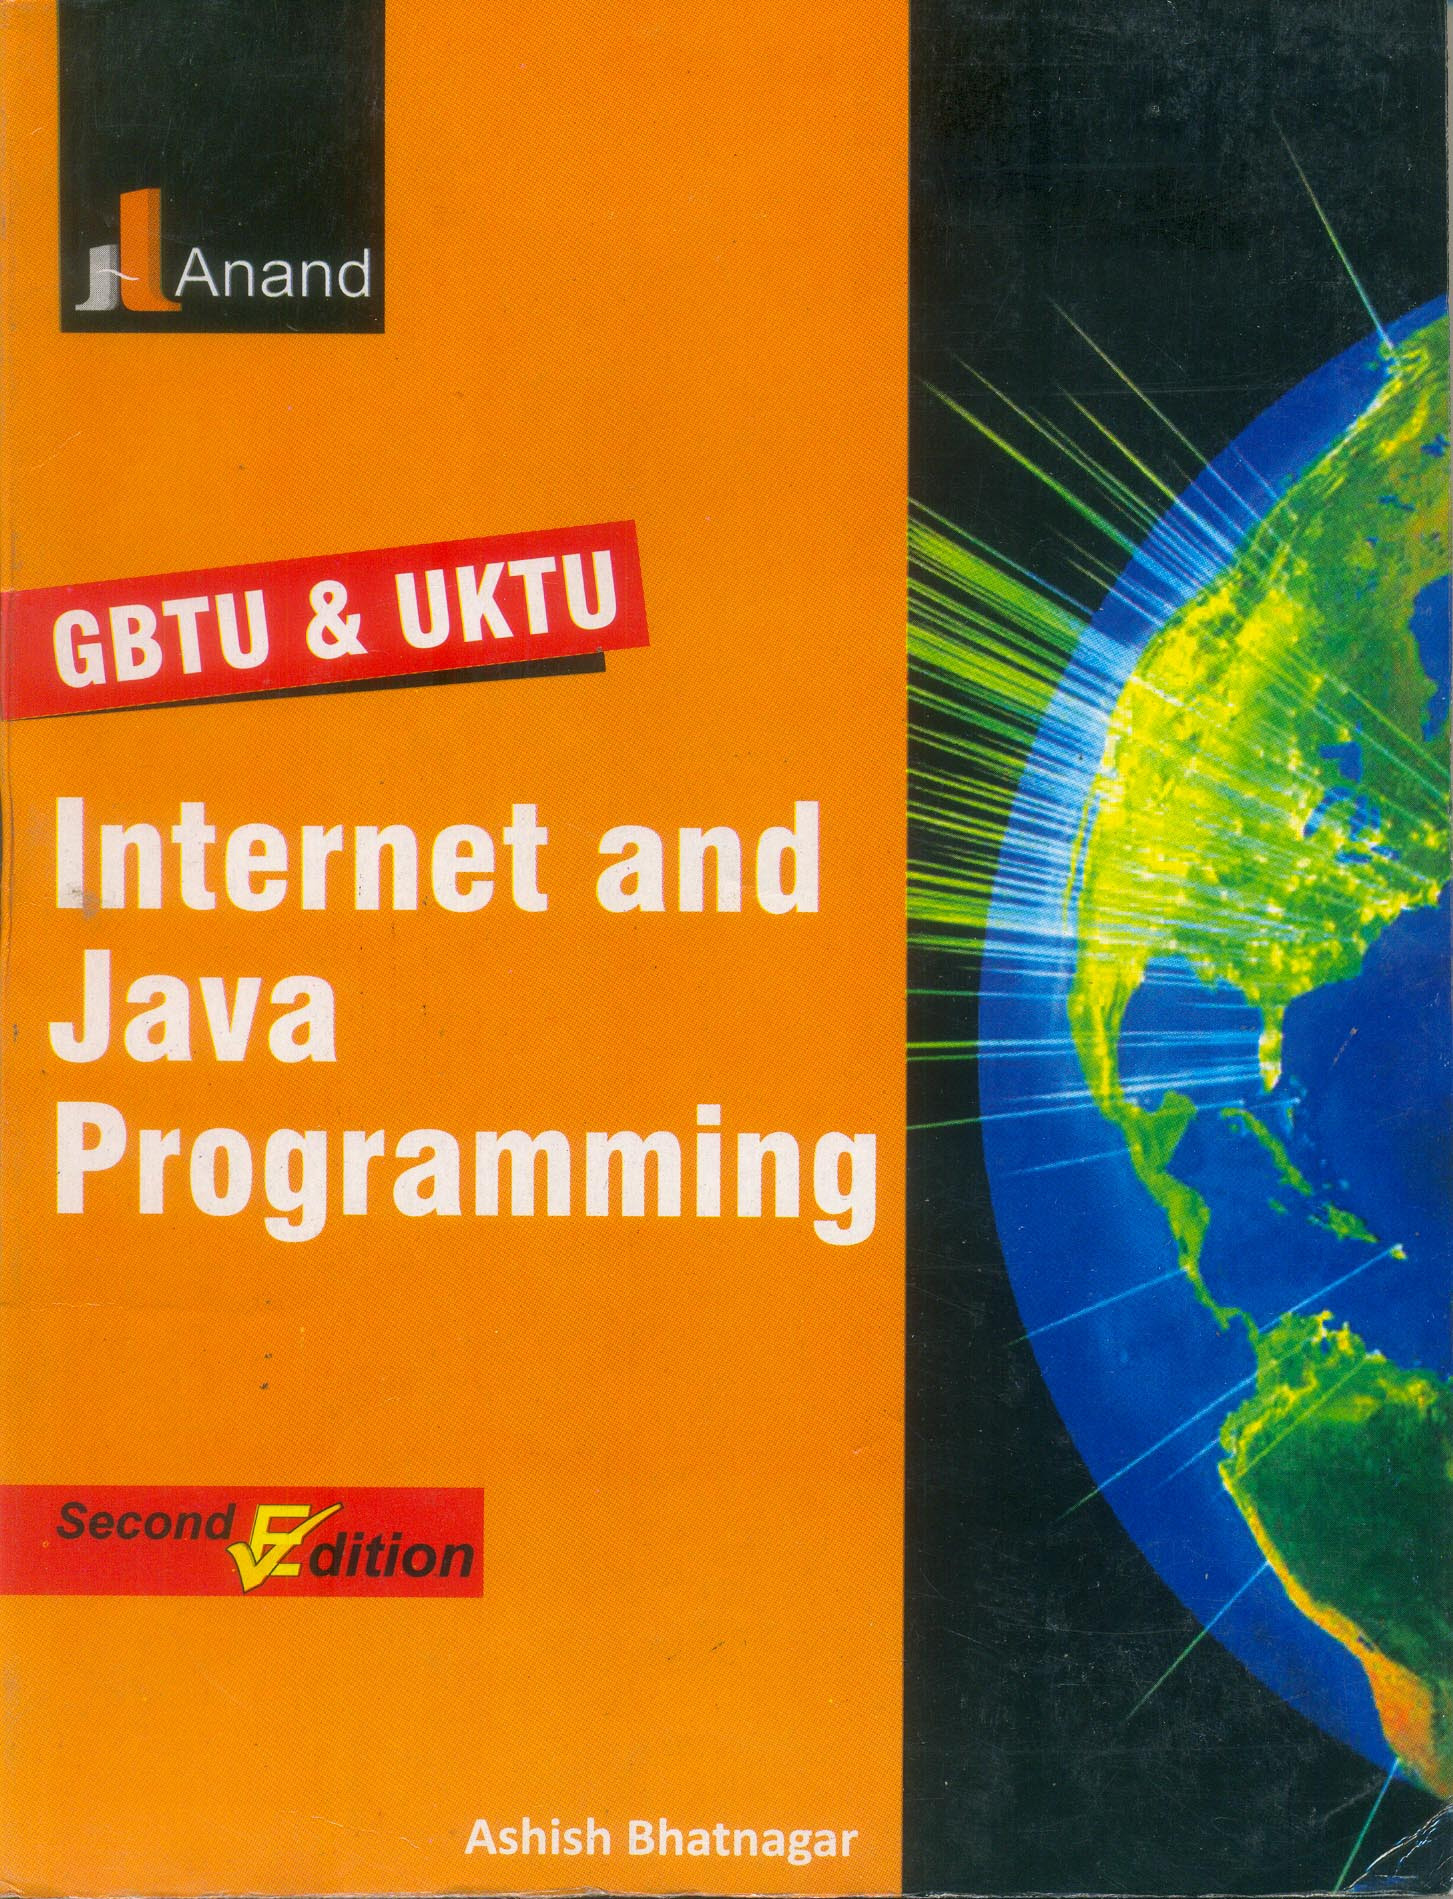 MCA3.5 INTERNET AND JAVA PROGRAMMING